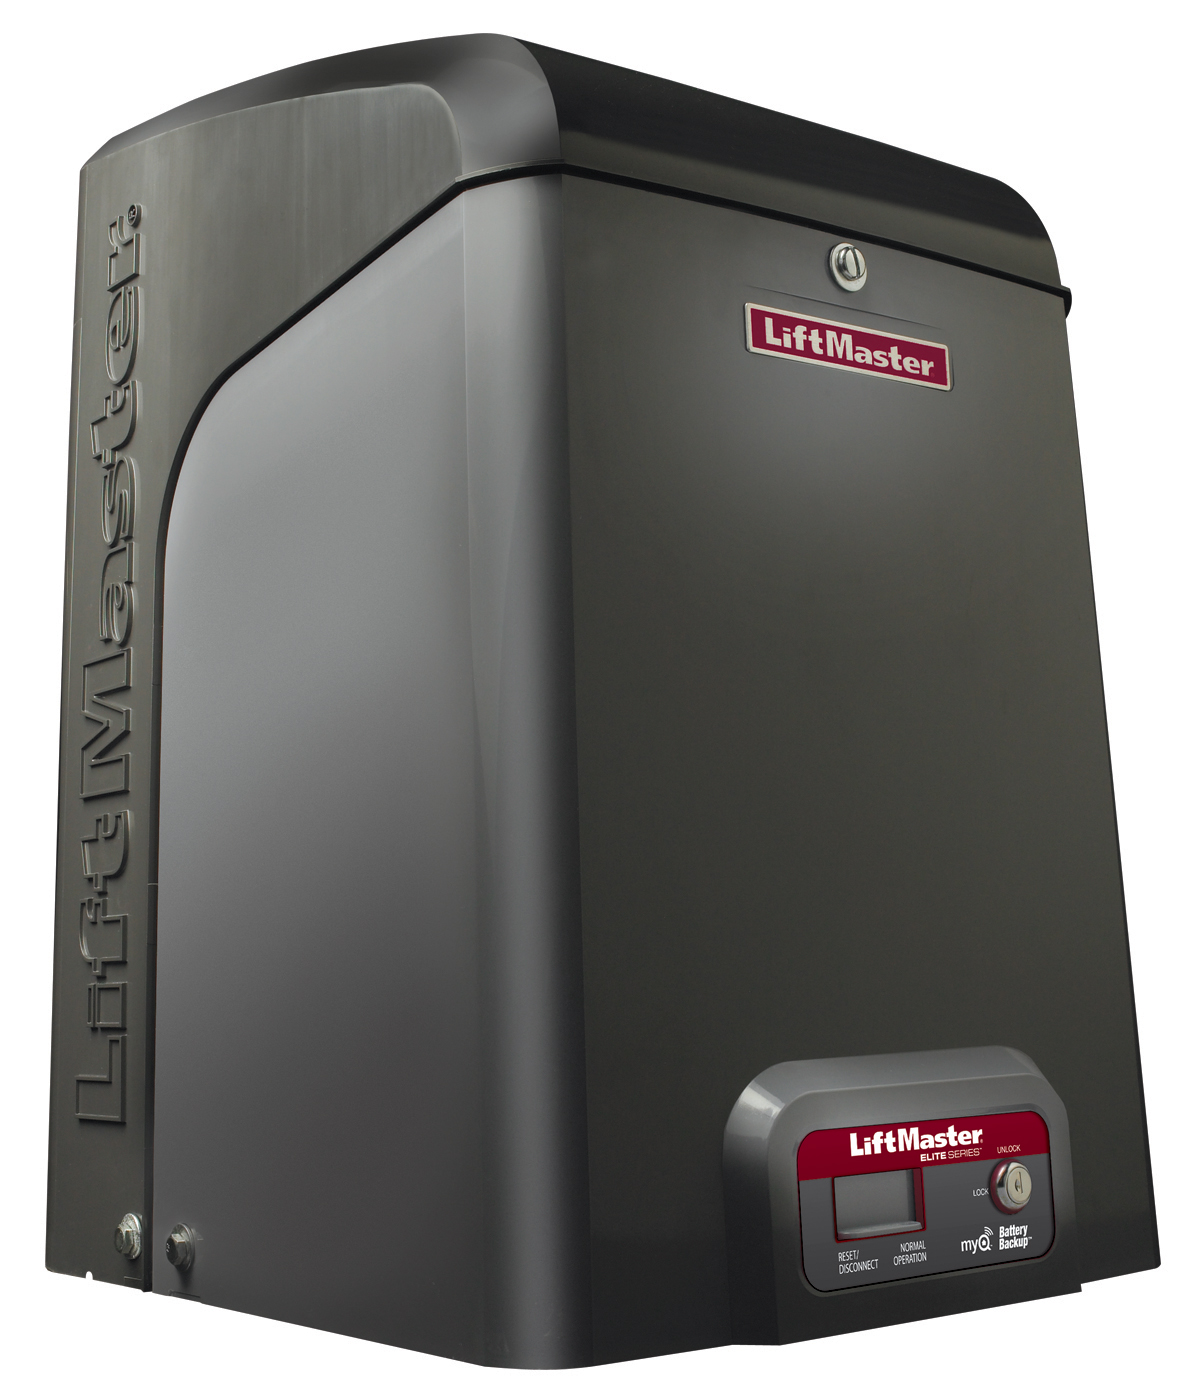 Liftmaster Next Generation 2012 Photography